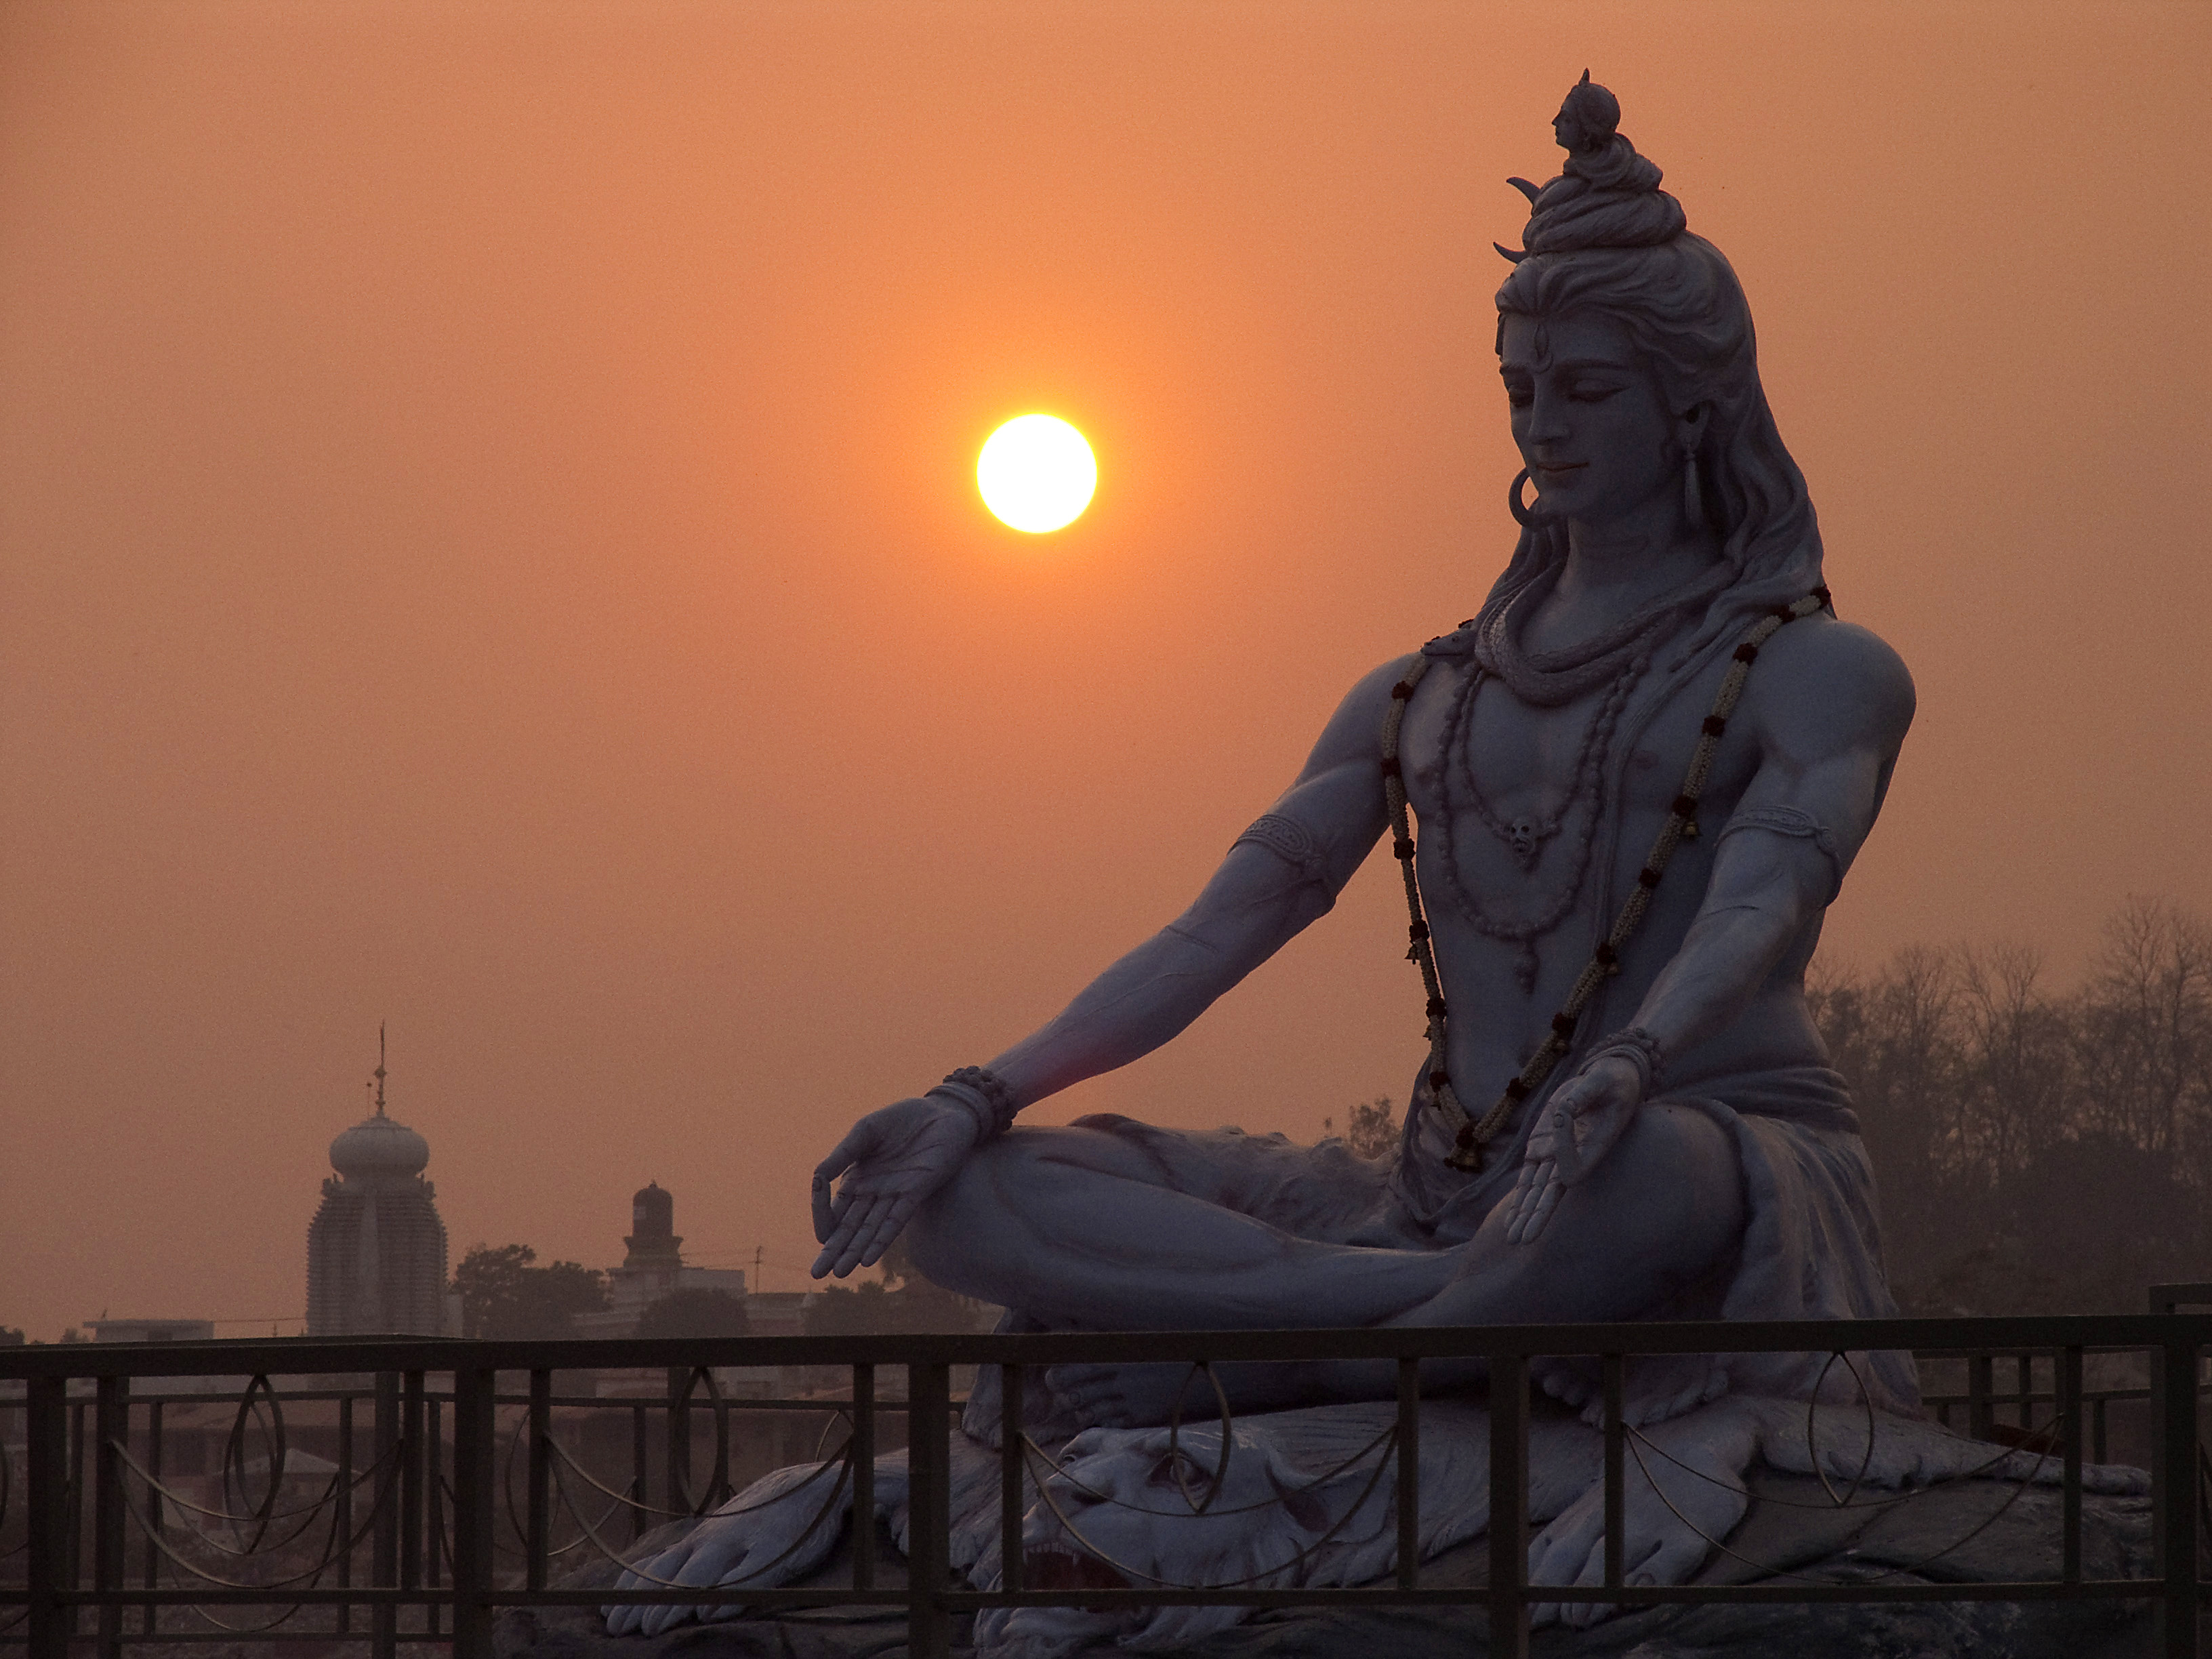 A Shiva statue in the sunset : woahdude